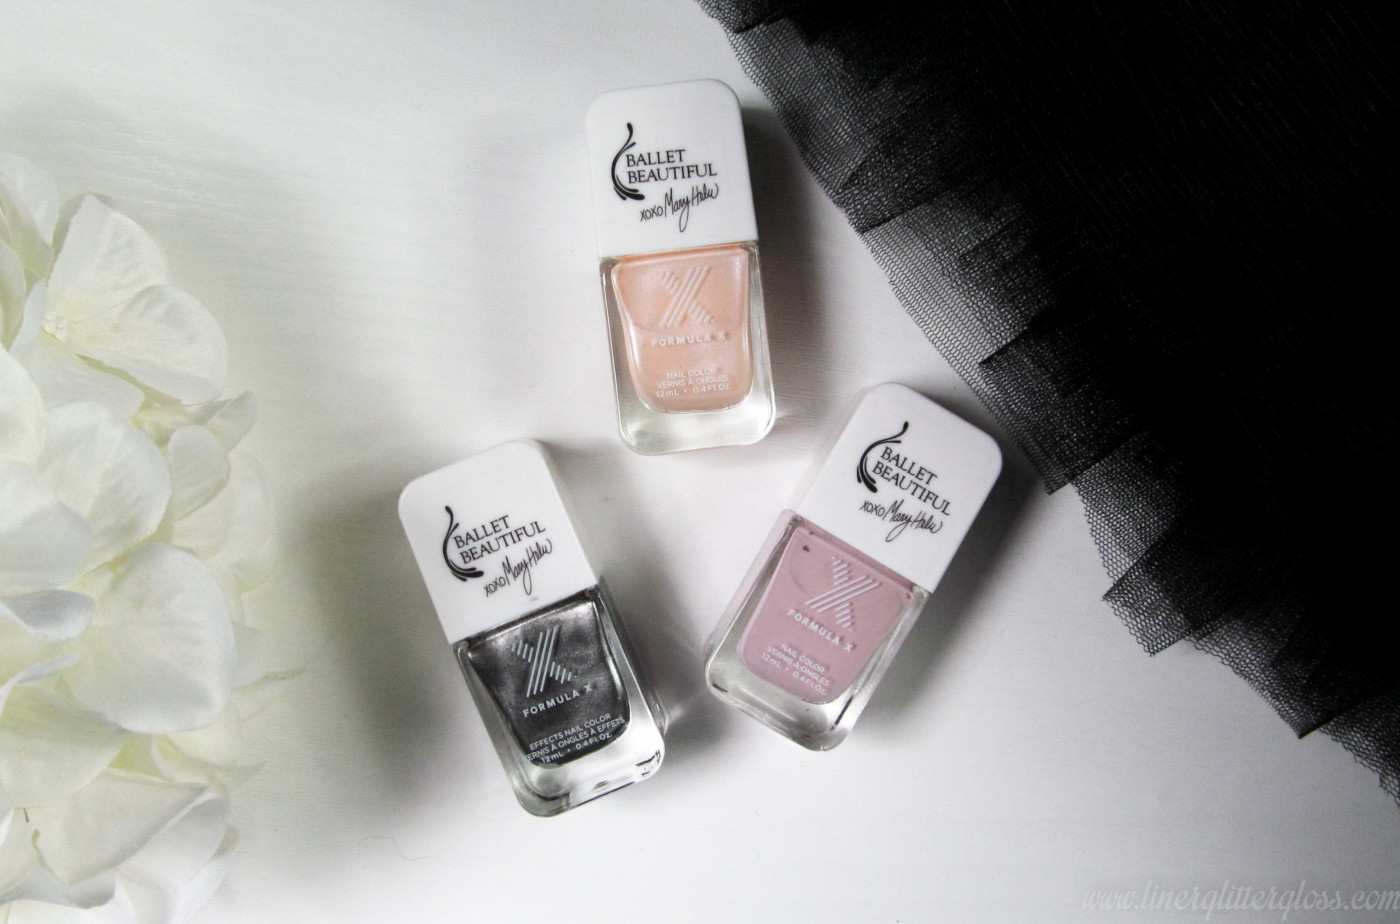 formula x, formula x color curators, formula x color curators april 2016, formula x ballet beautiful, ballet beautiful nail polish, formula x spring 216, formula x ballet beautiful swatches, formula x lilac fairy, formula x ballet barre, formula x satin slippers, ballet nail polish, nail polish for ballerinas, nail polish for brides, wedding nail polish, wedding nails, what nail polish should i wear for my wedding, new nail polish for spring, new nail polish for spring 2016, ballet beautiful